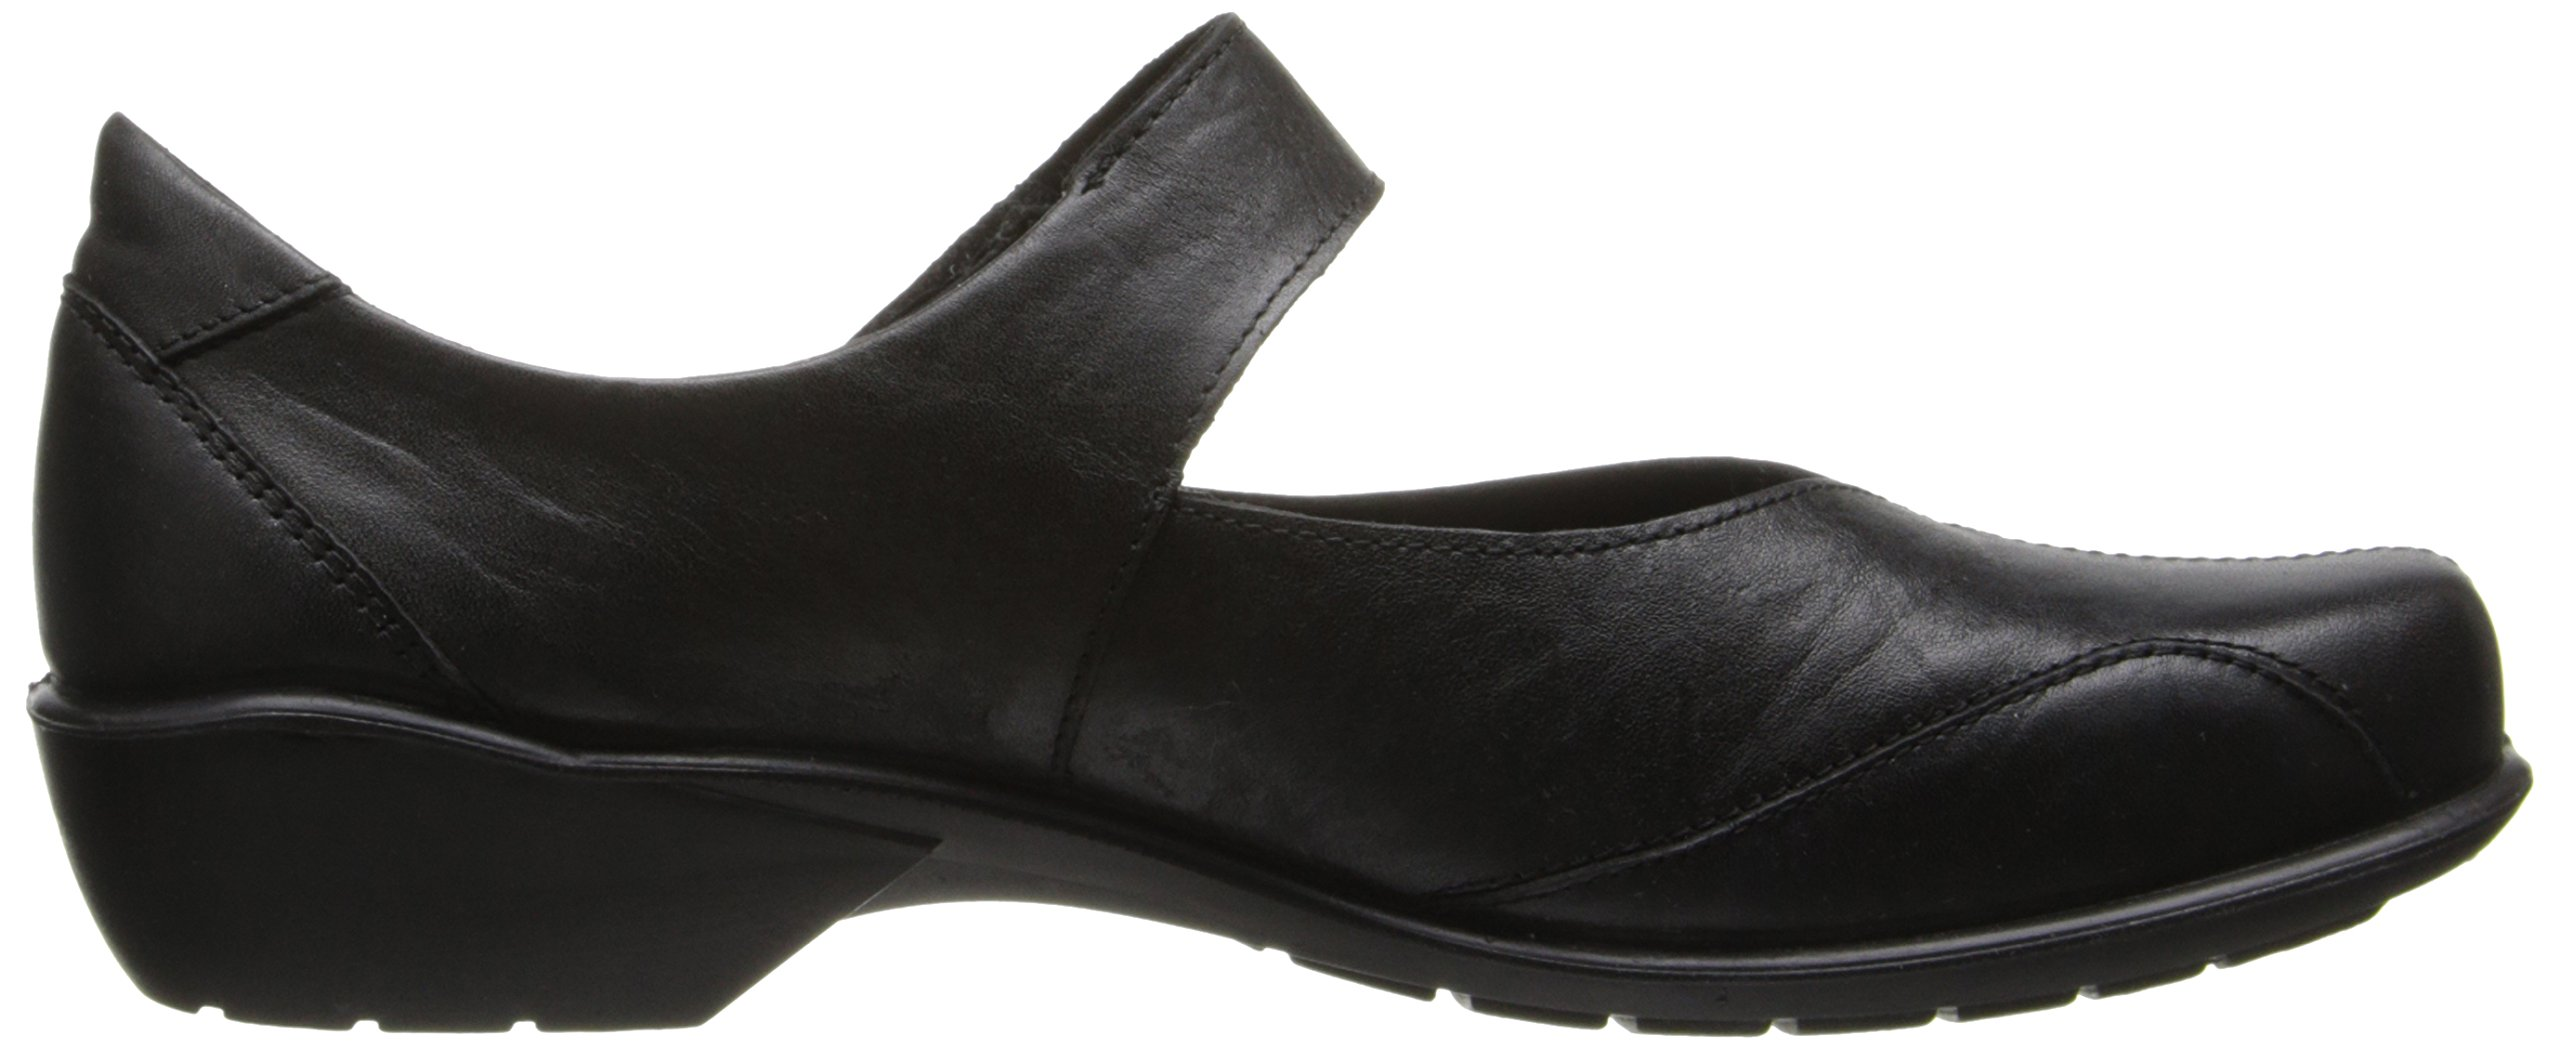 Romika Women's Citylight 87 Mary Jane Flat,Black,39 BR/8-8.5 M US by Romika (Image #7)